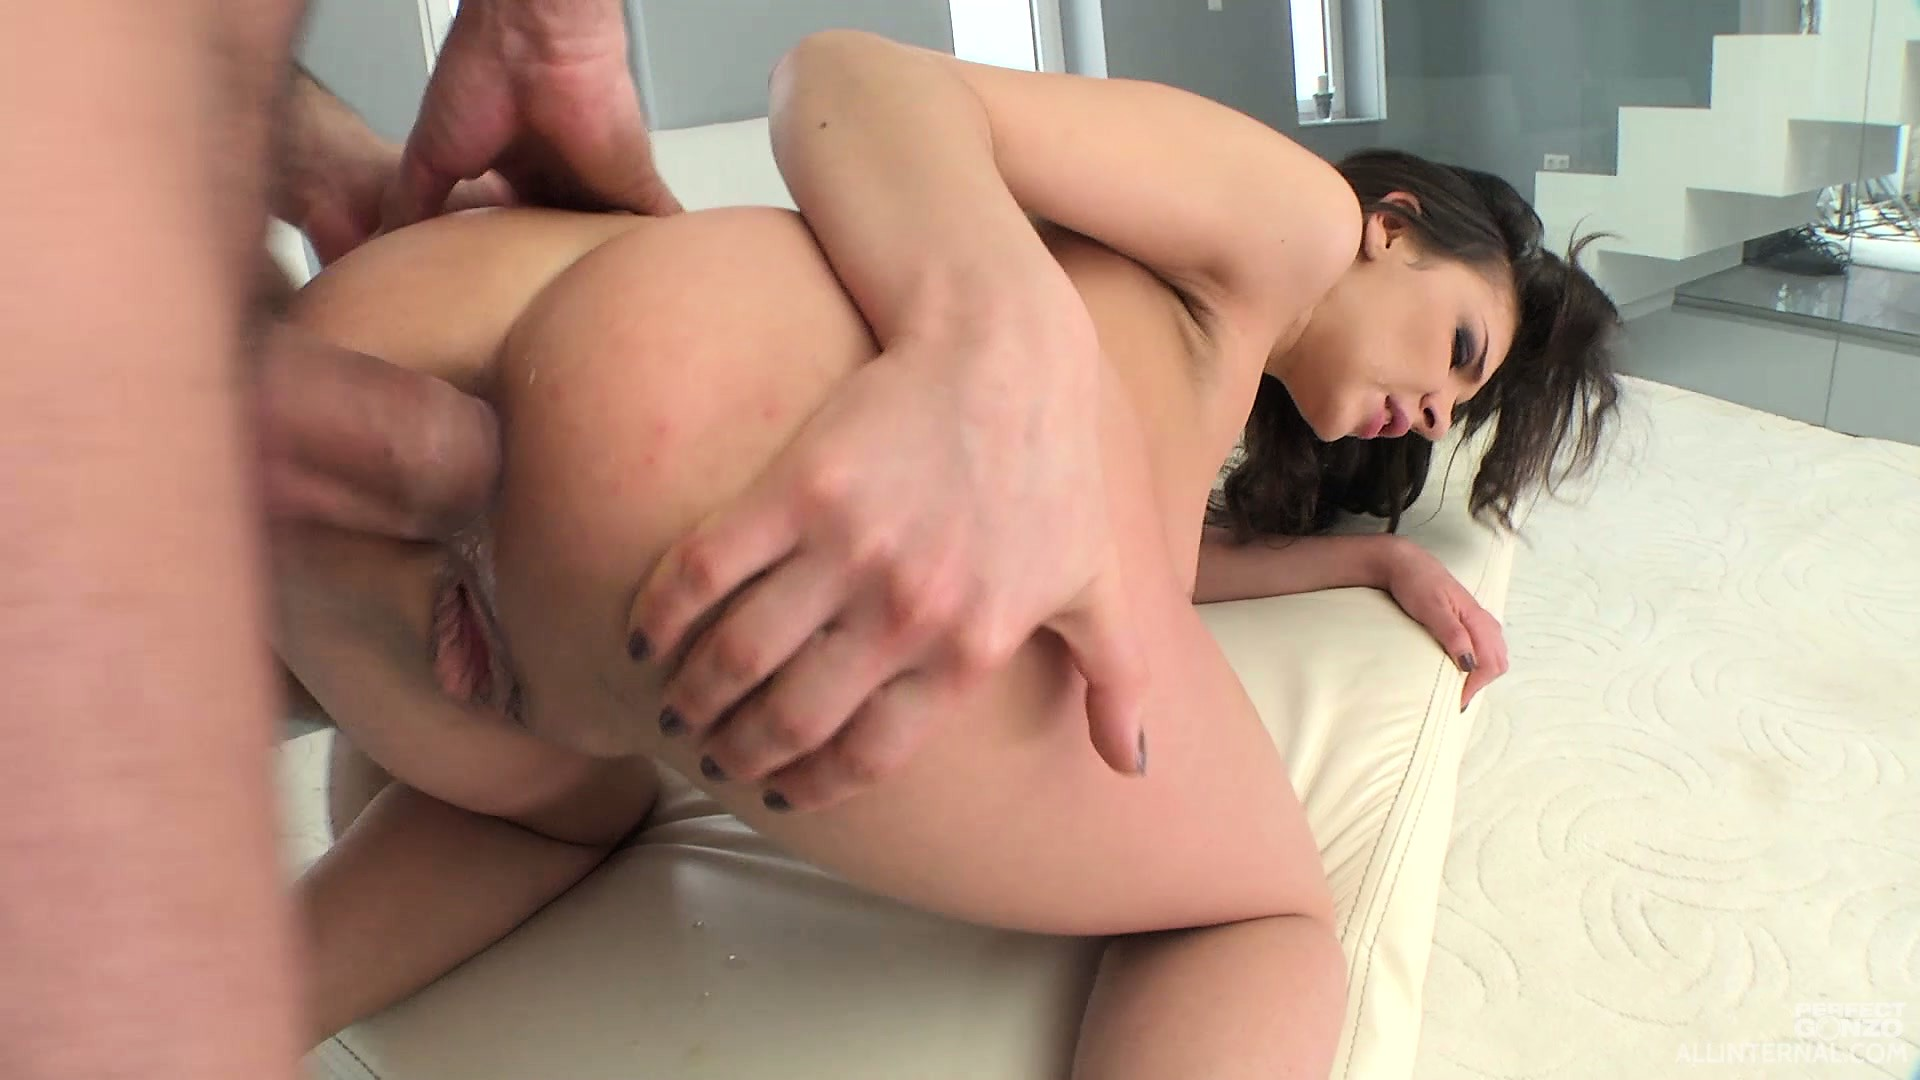 Porno Video of Henessy Loves To Get Her Ass Fucked Doggy Style And To Bounce On That Big Shaft